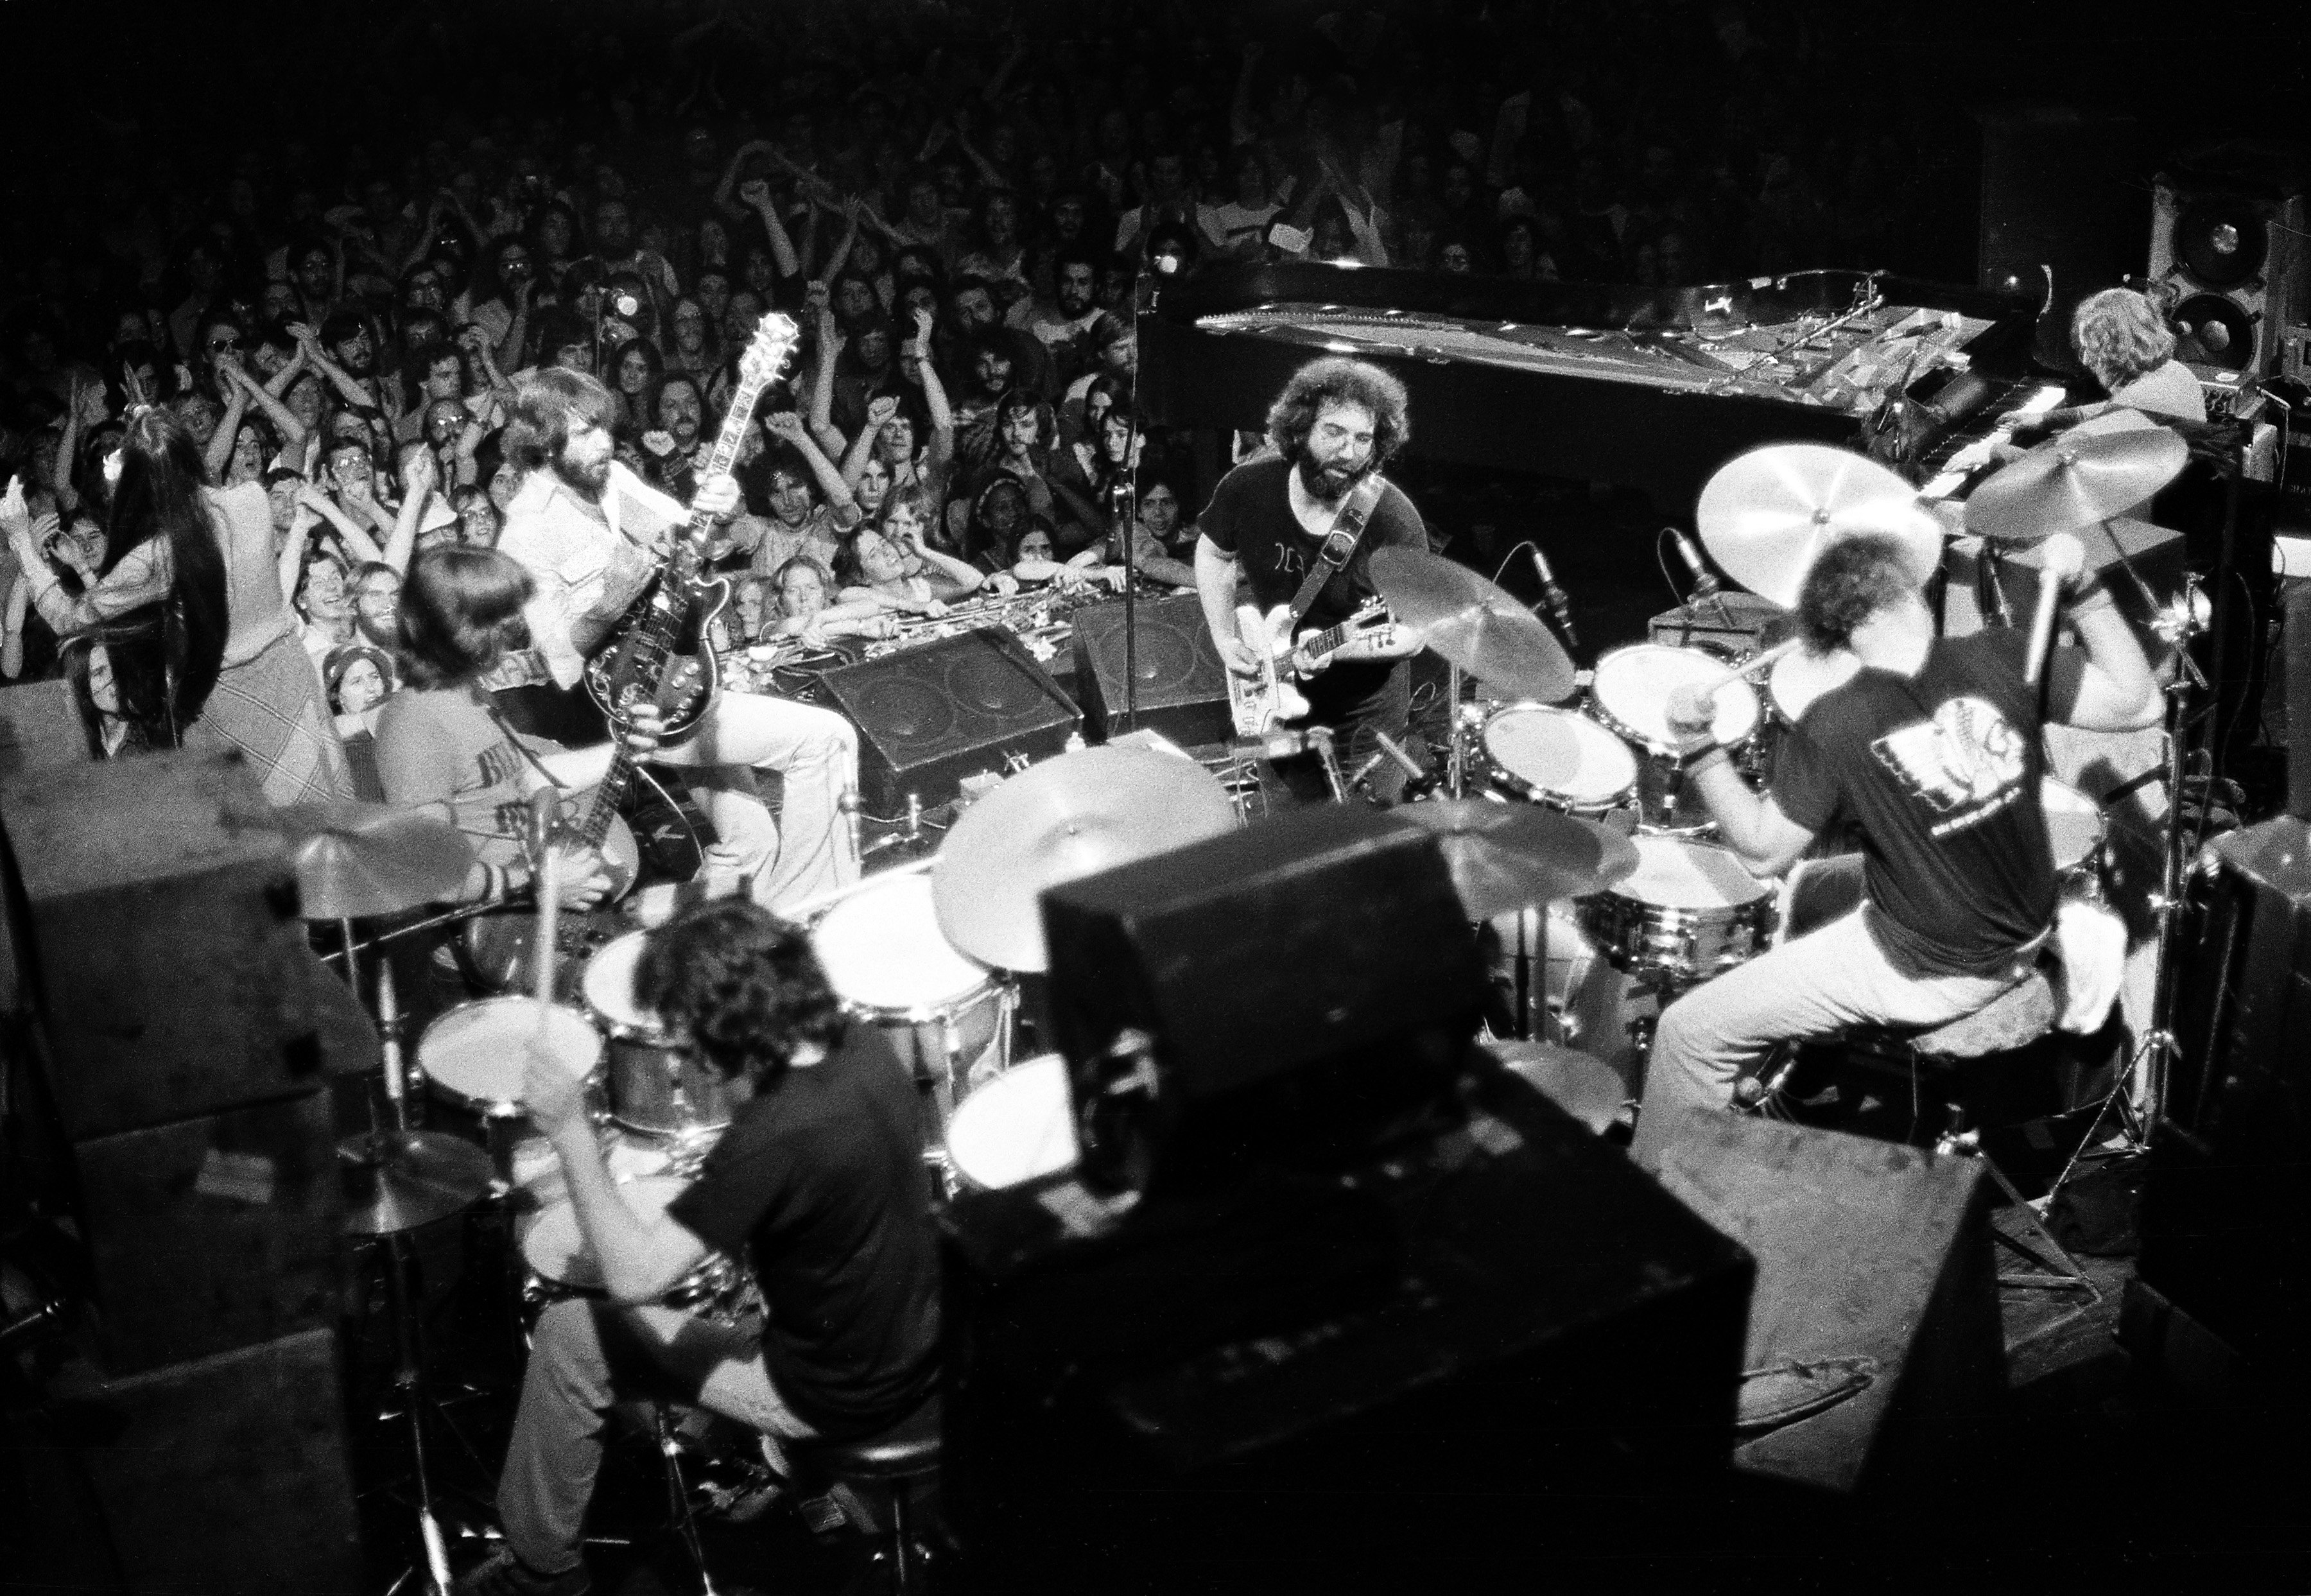 Listen to 90 Minutes of Tuning From Grateful Dead's 1977 Tour